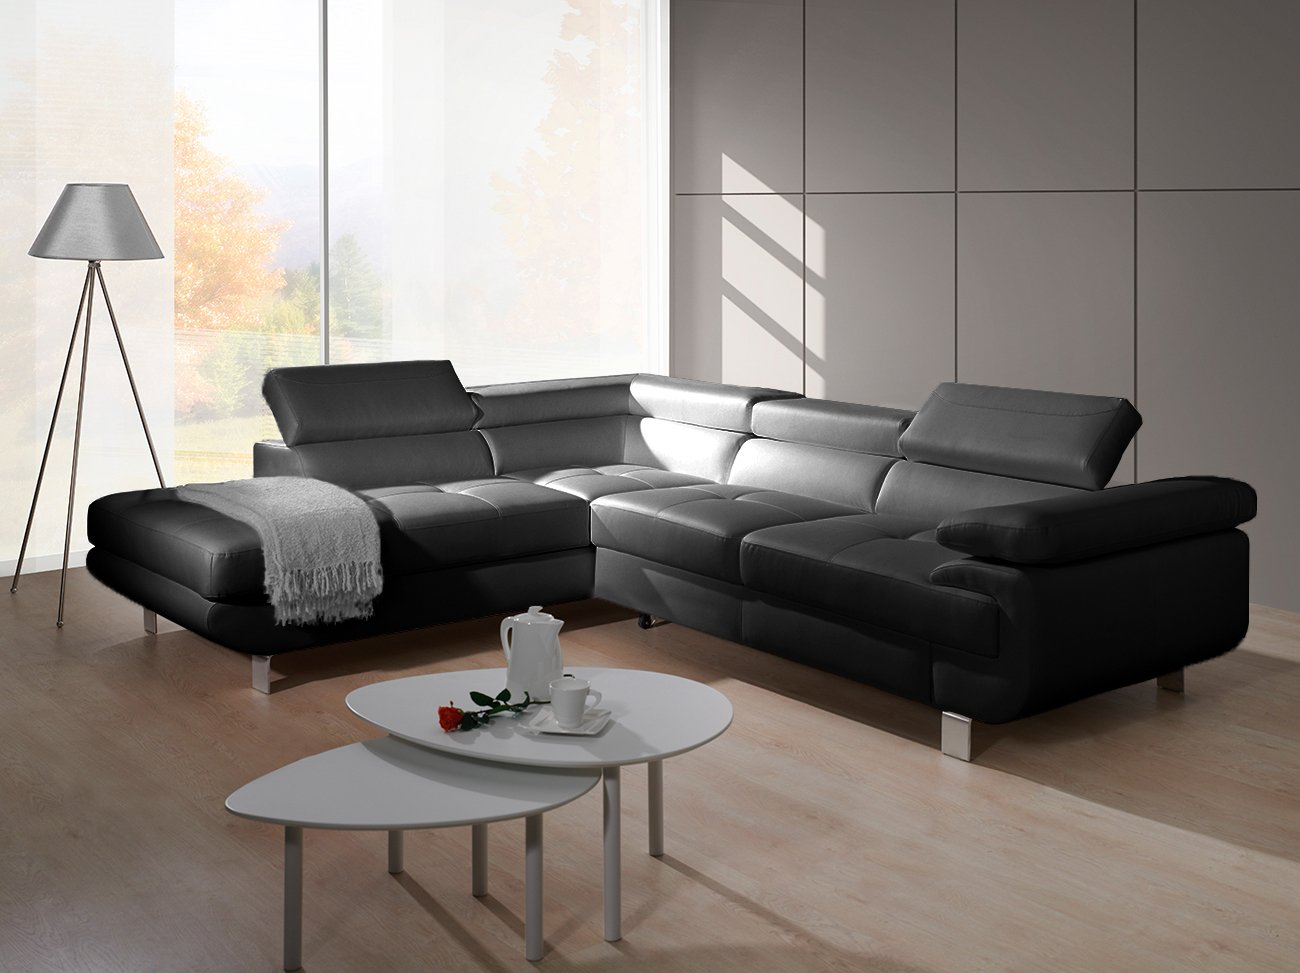 luccia schwarz sofa couch ecksofa l form elegant mit bettkasten schlaffunktion ebay. Black Bedroom Furniture Sets. Home Design Ideas